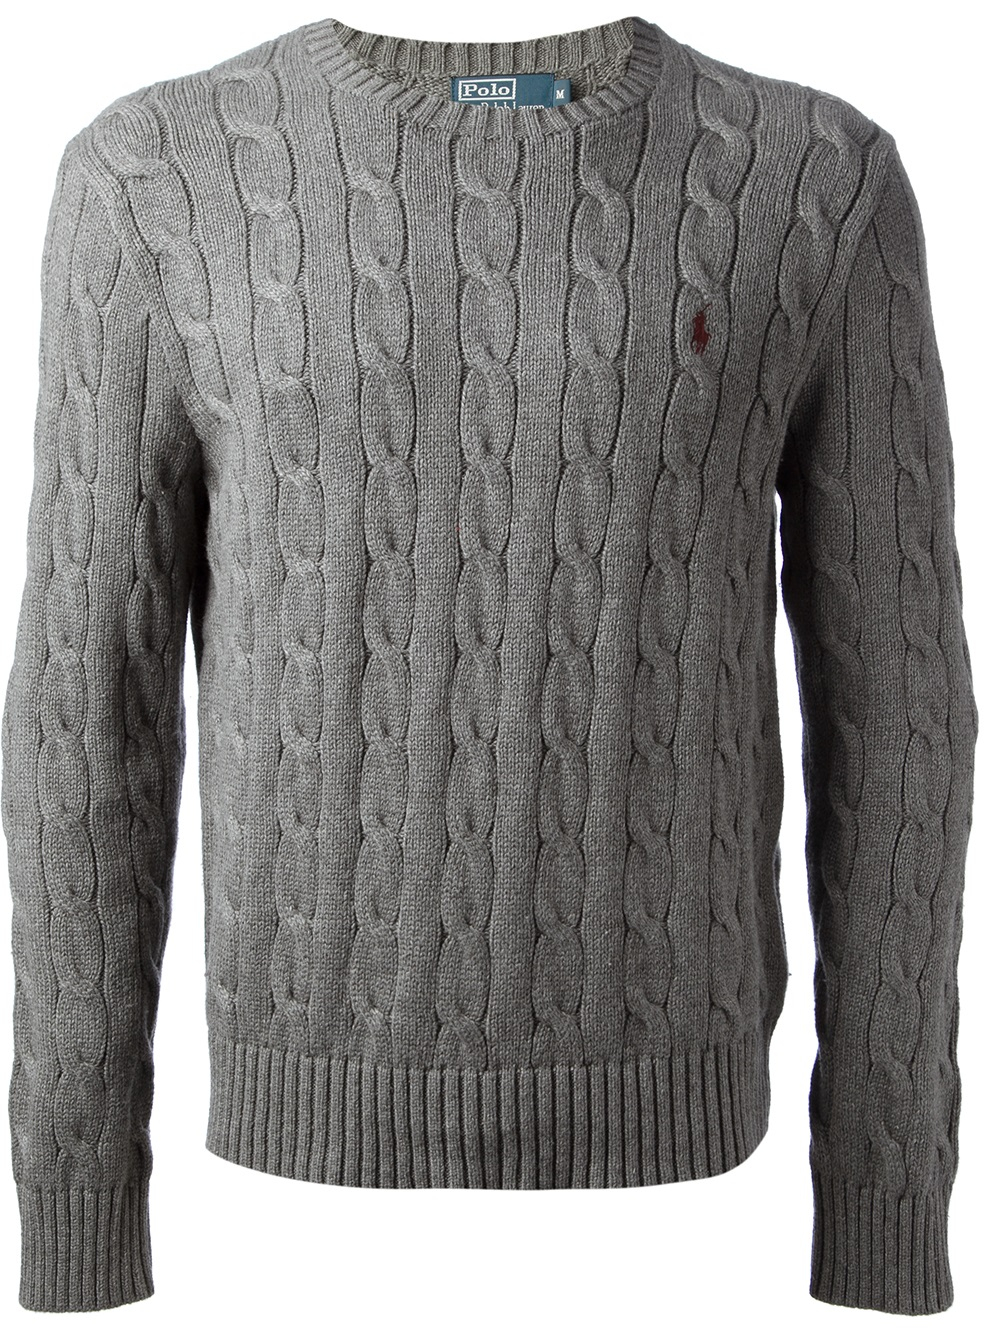 Polo ralph lauren Cable Knit Sweater in Gray for Men | Lyst